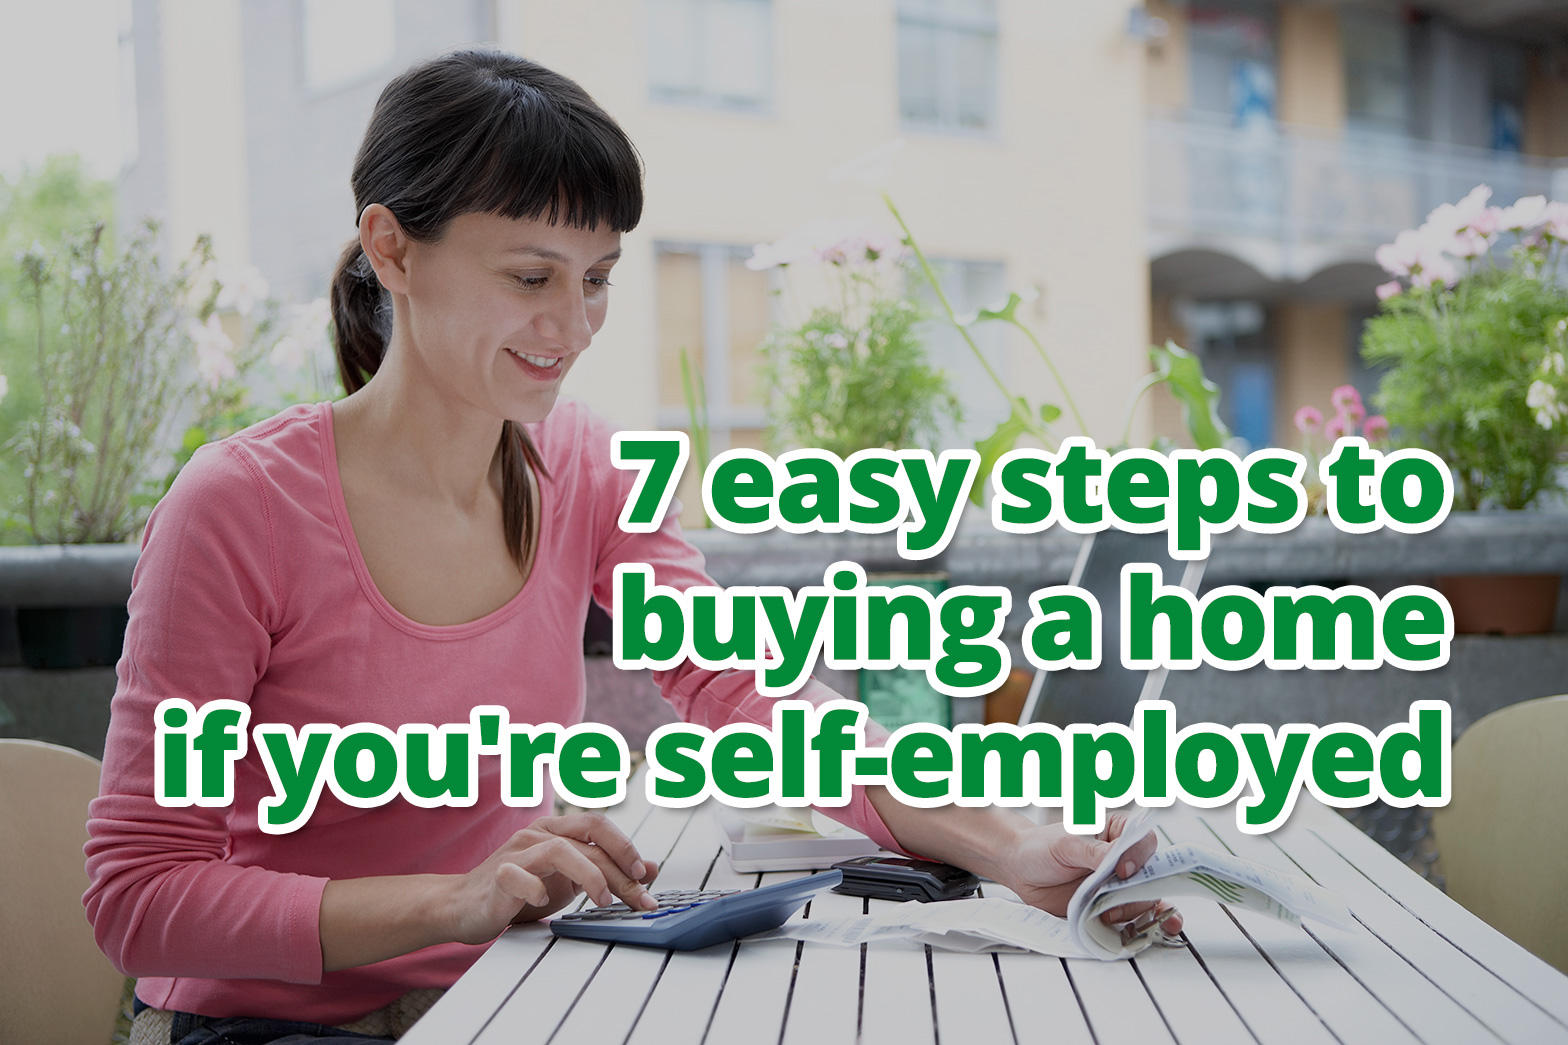 7 easy steps to buying a home if you're self-employed